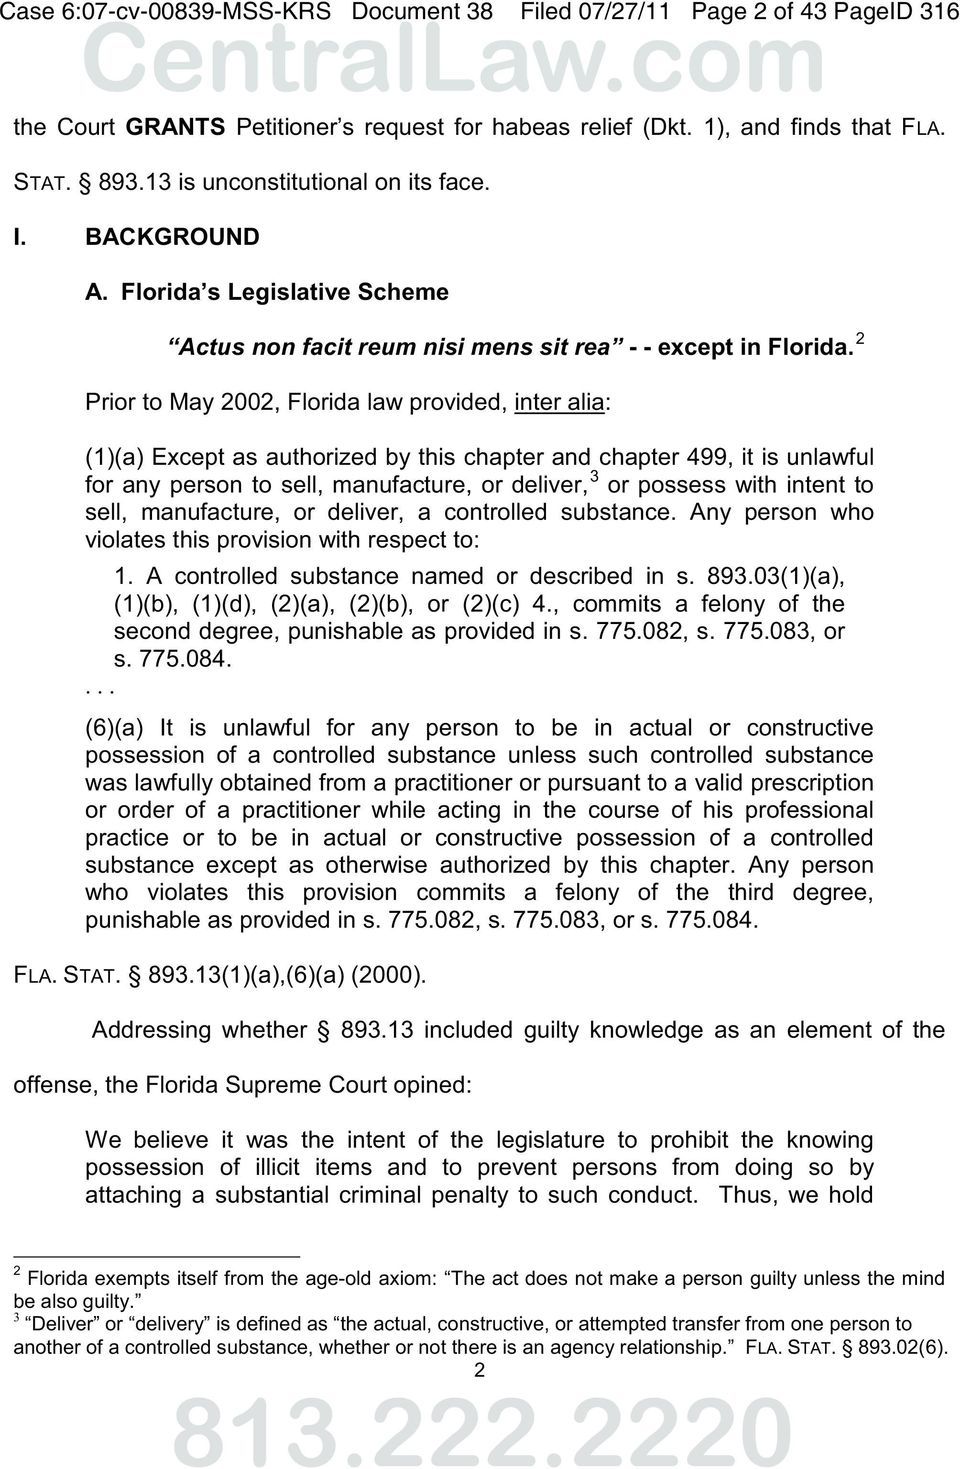 2 Prior to May 2002, Florida law provided, inter alia: (1)(a) Except as authorized by this chapter and chapter 499, it is unlawful for any person to sell, manufacture, or deliver, 3 or possess with